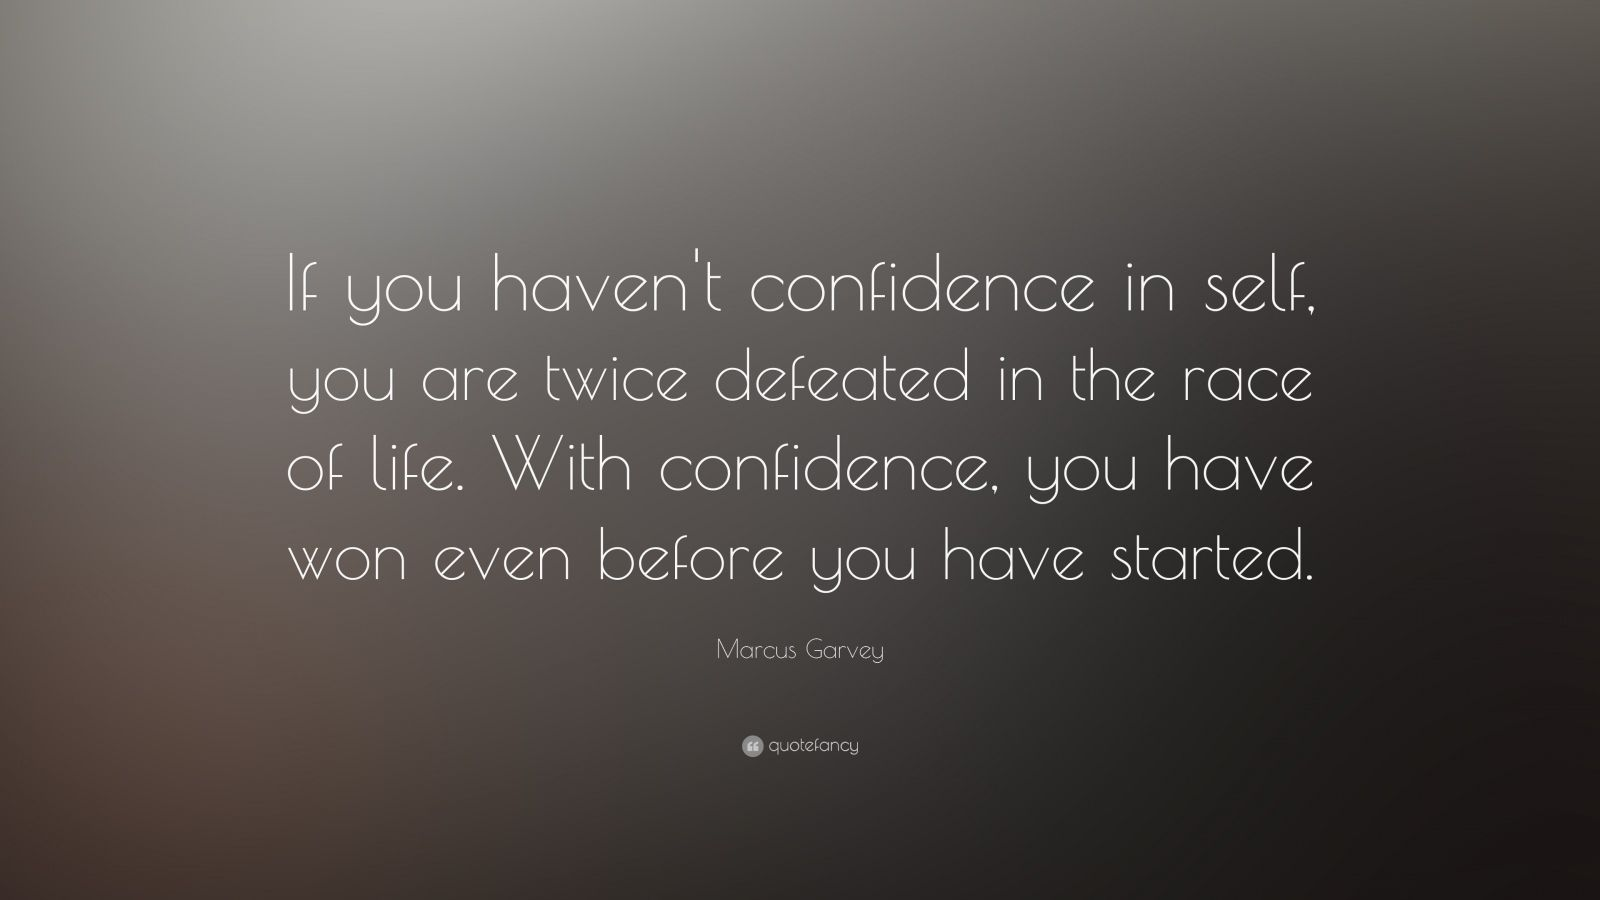 """Confidence Quotes: """"If you haven't confidence in self, you are twice defeated in the race of life. With confidence, you have won even before you have started. """" — Marcus Garvey"""